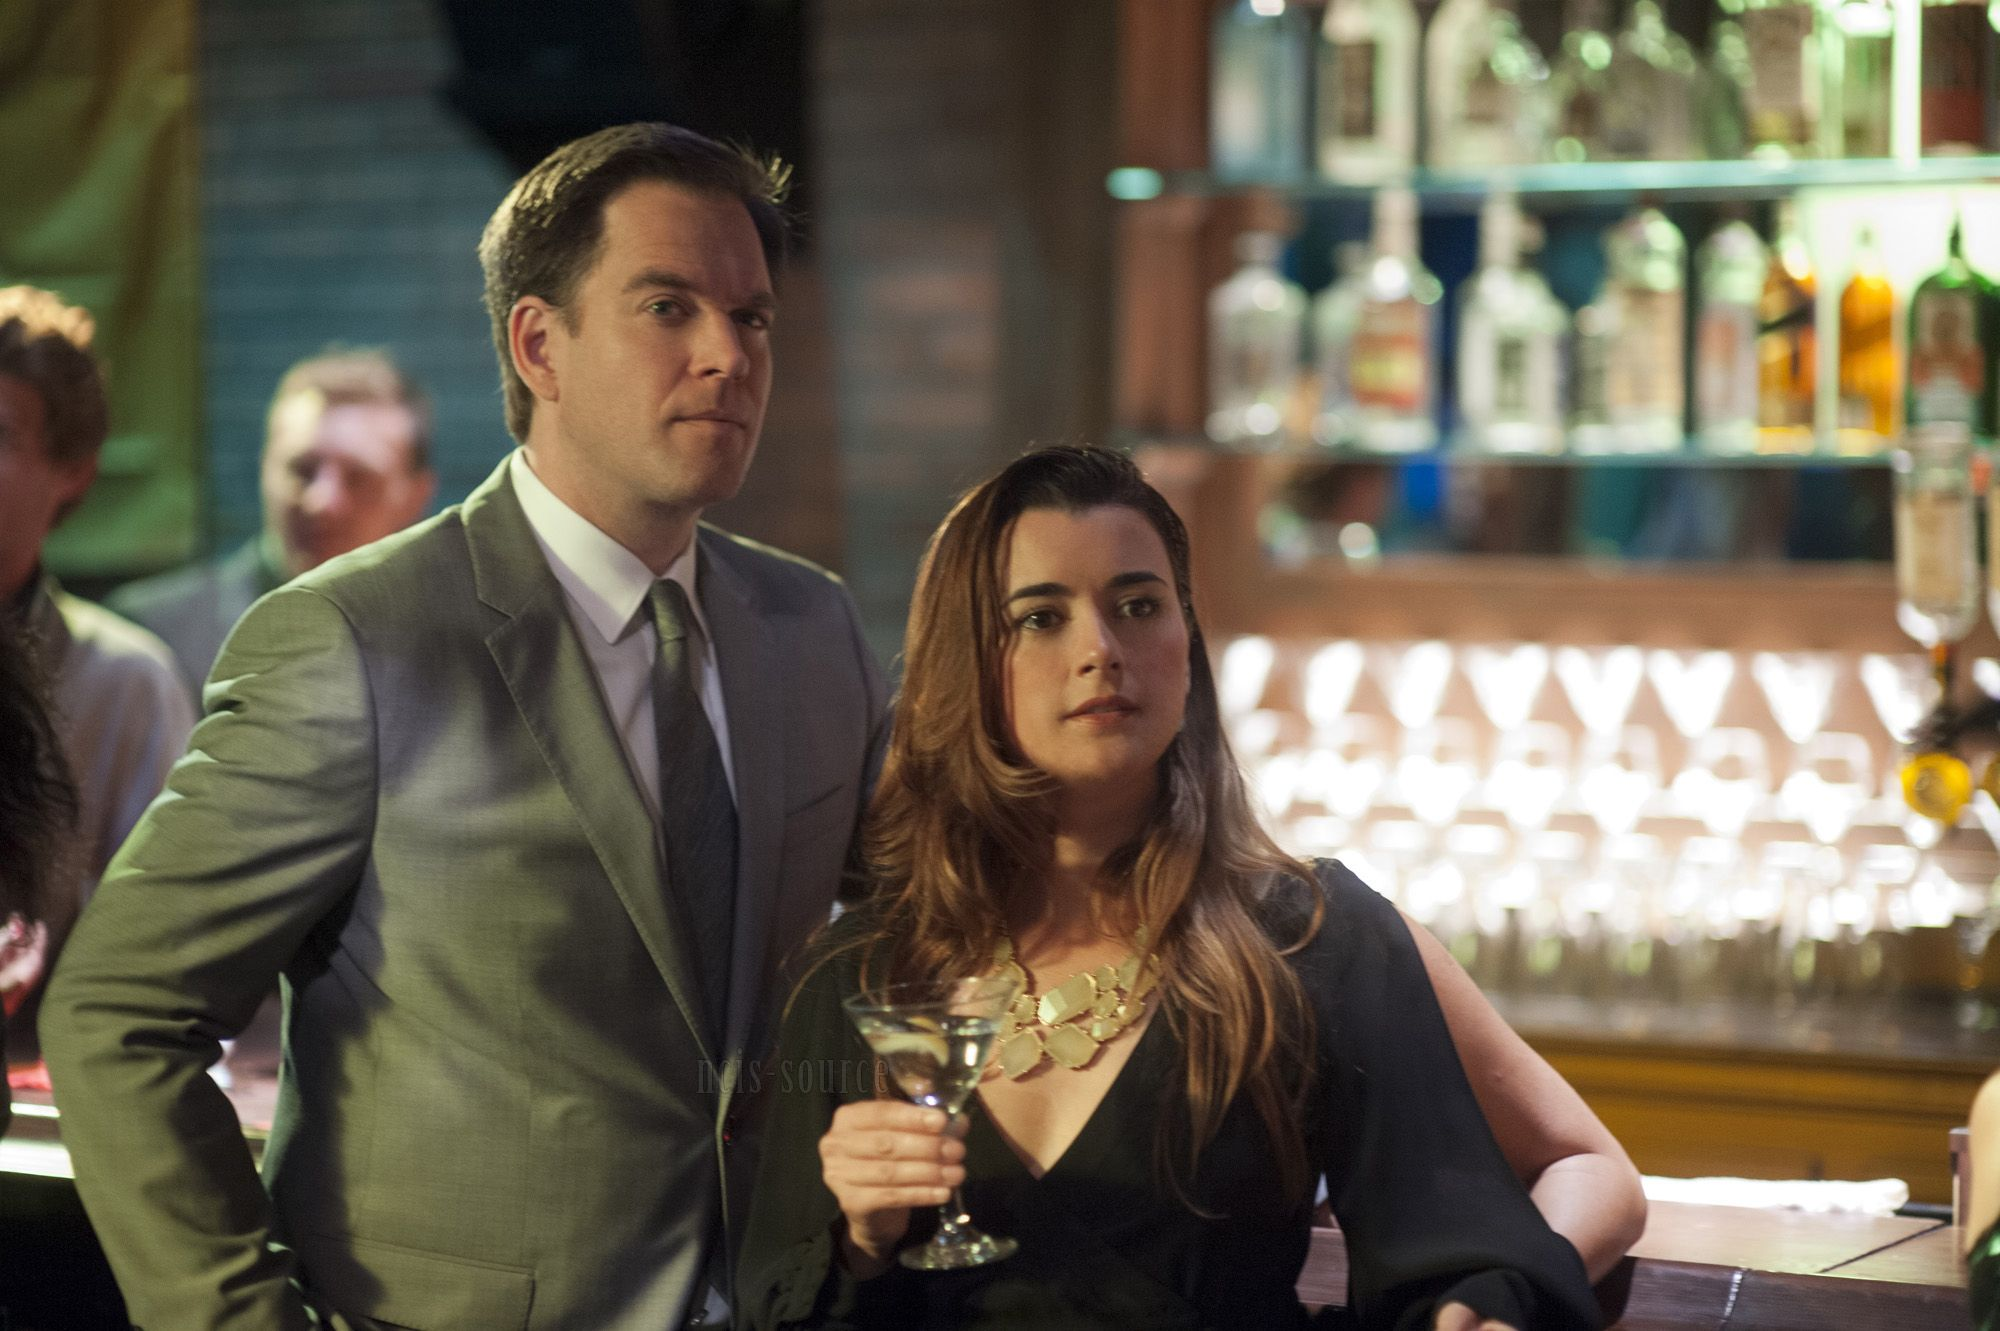 Micheal Weartherly and Cote de Pablo standing together in a bar